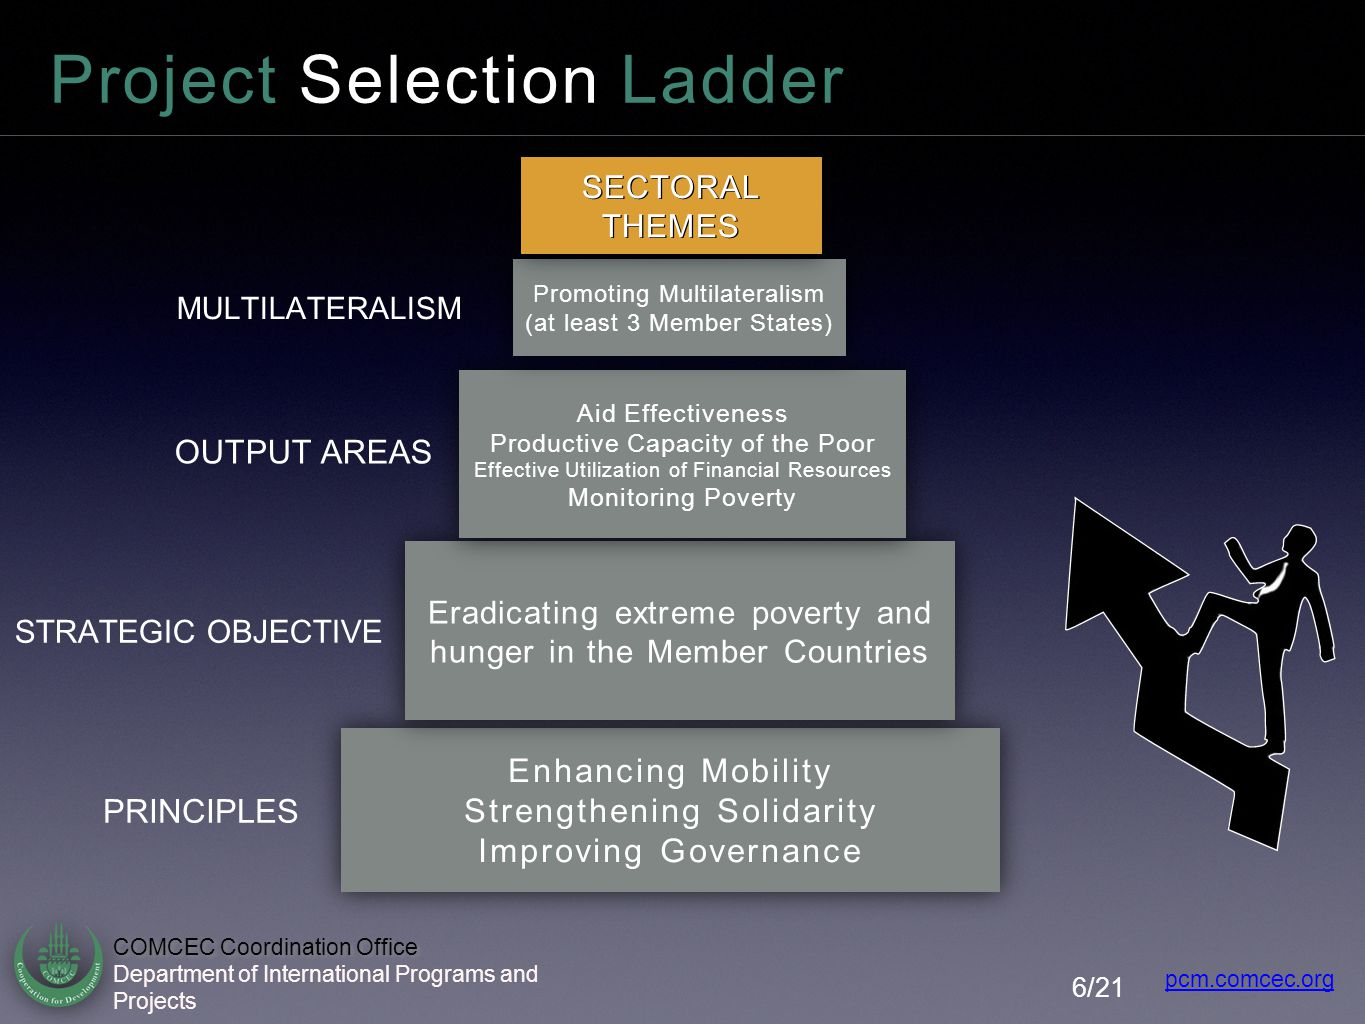 Project Selection Ladder